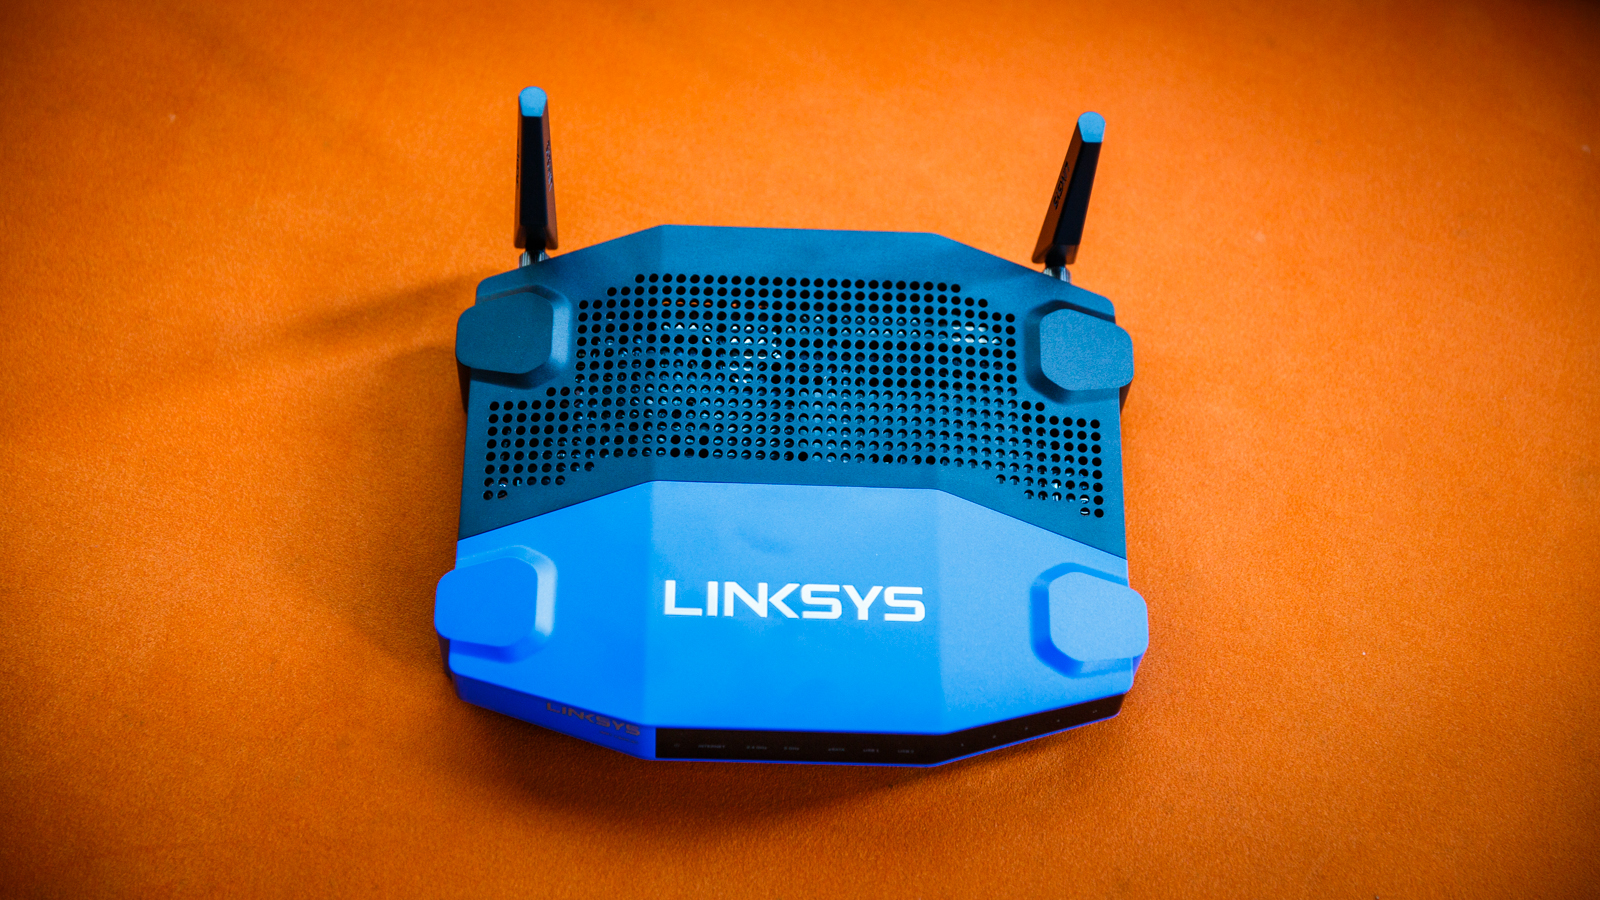 Linksys WRT1200AC Dual Band Gigabit Wi-Fi Router